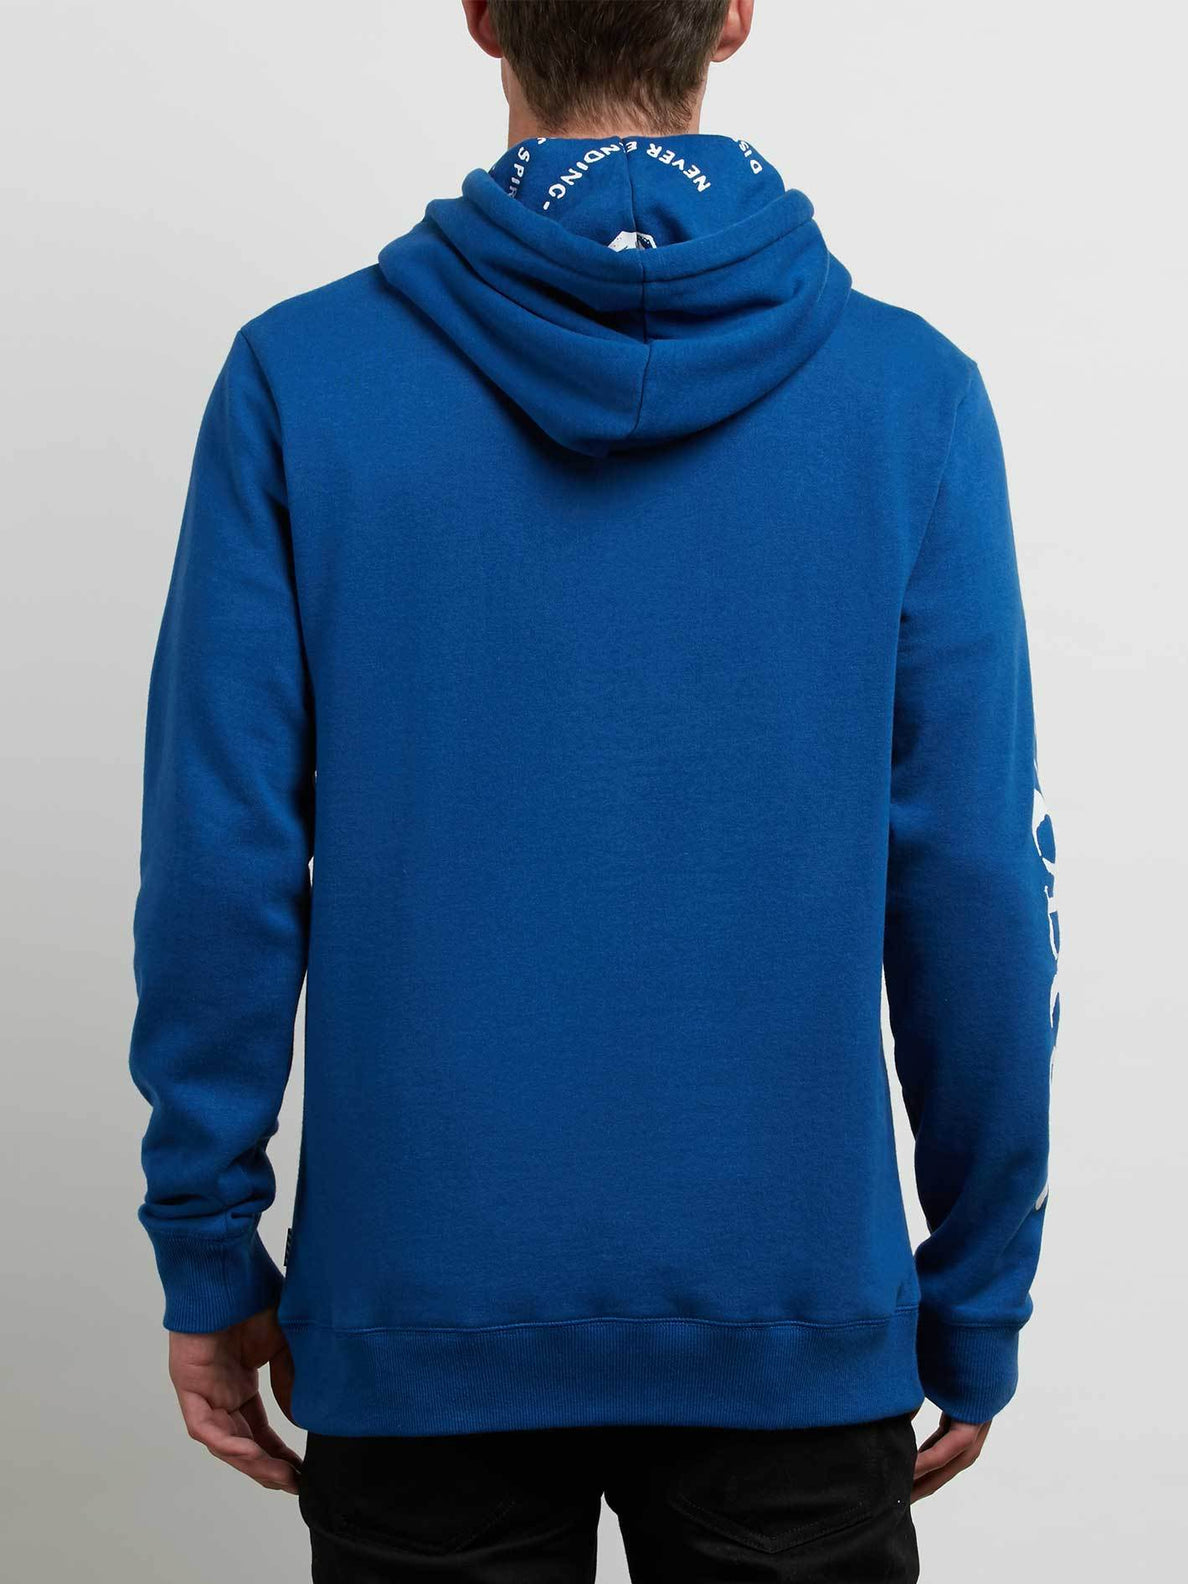 Reload Pullover Hoodie In Camper Blue, Back View